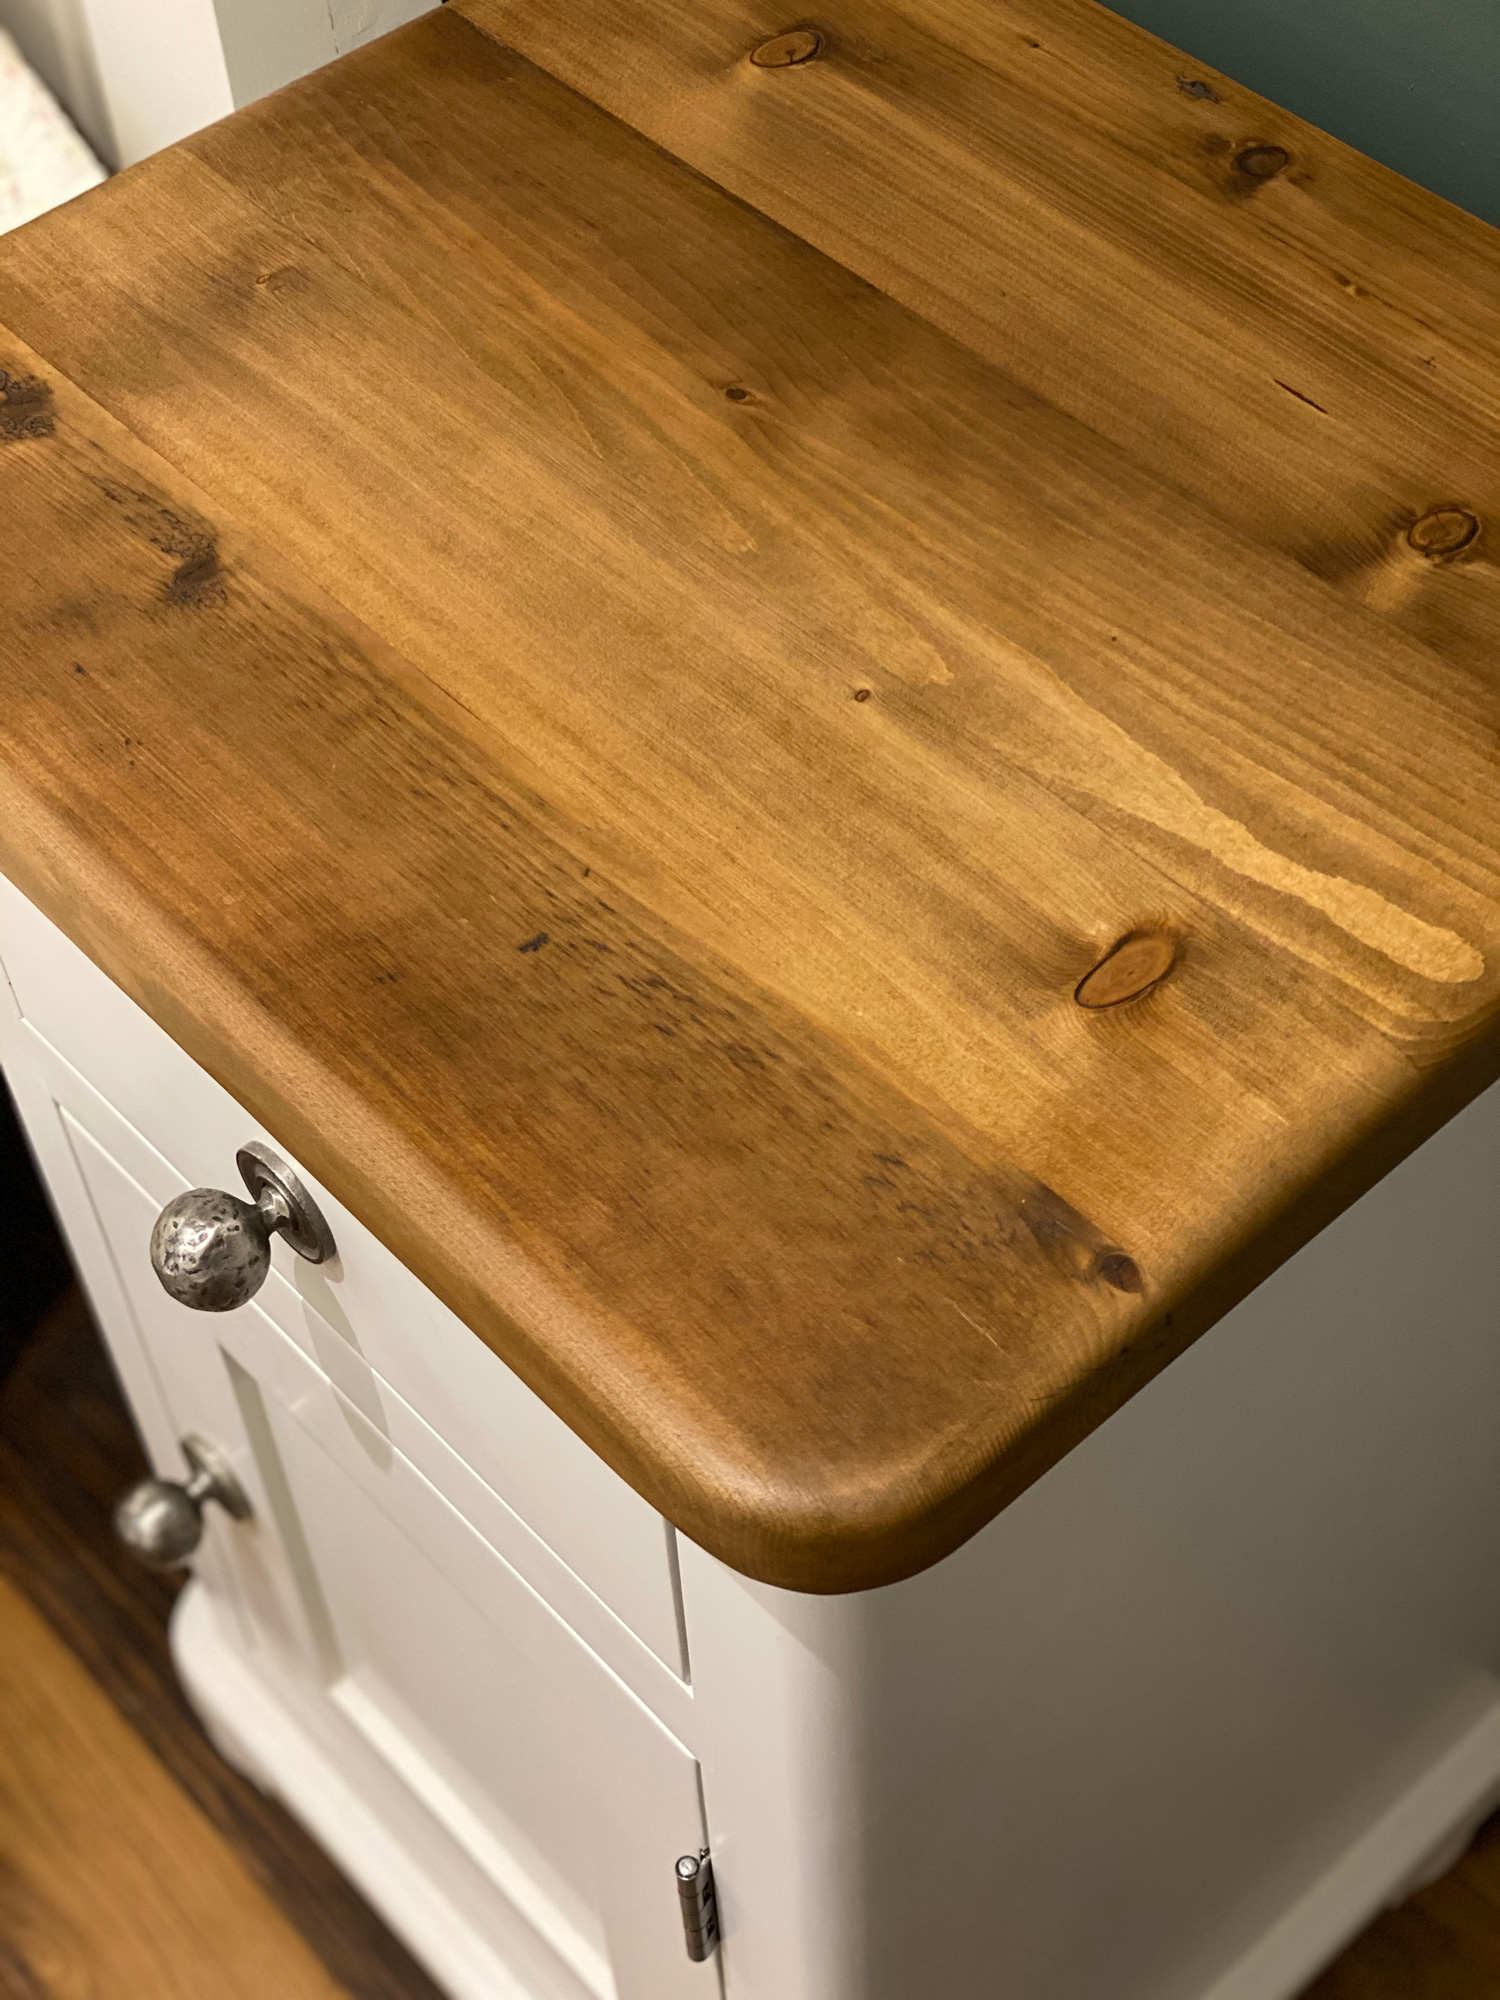 Reclaimed waxed pine worktop on painted bedside table